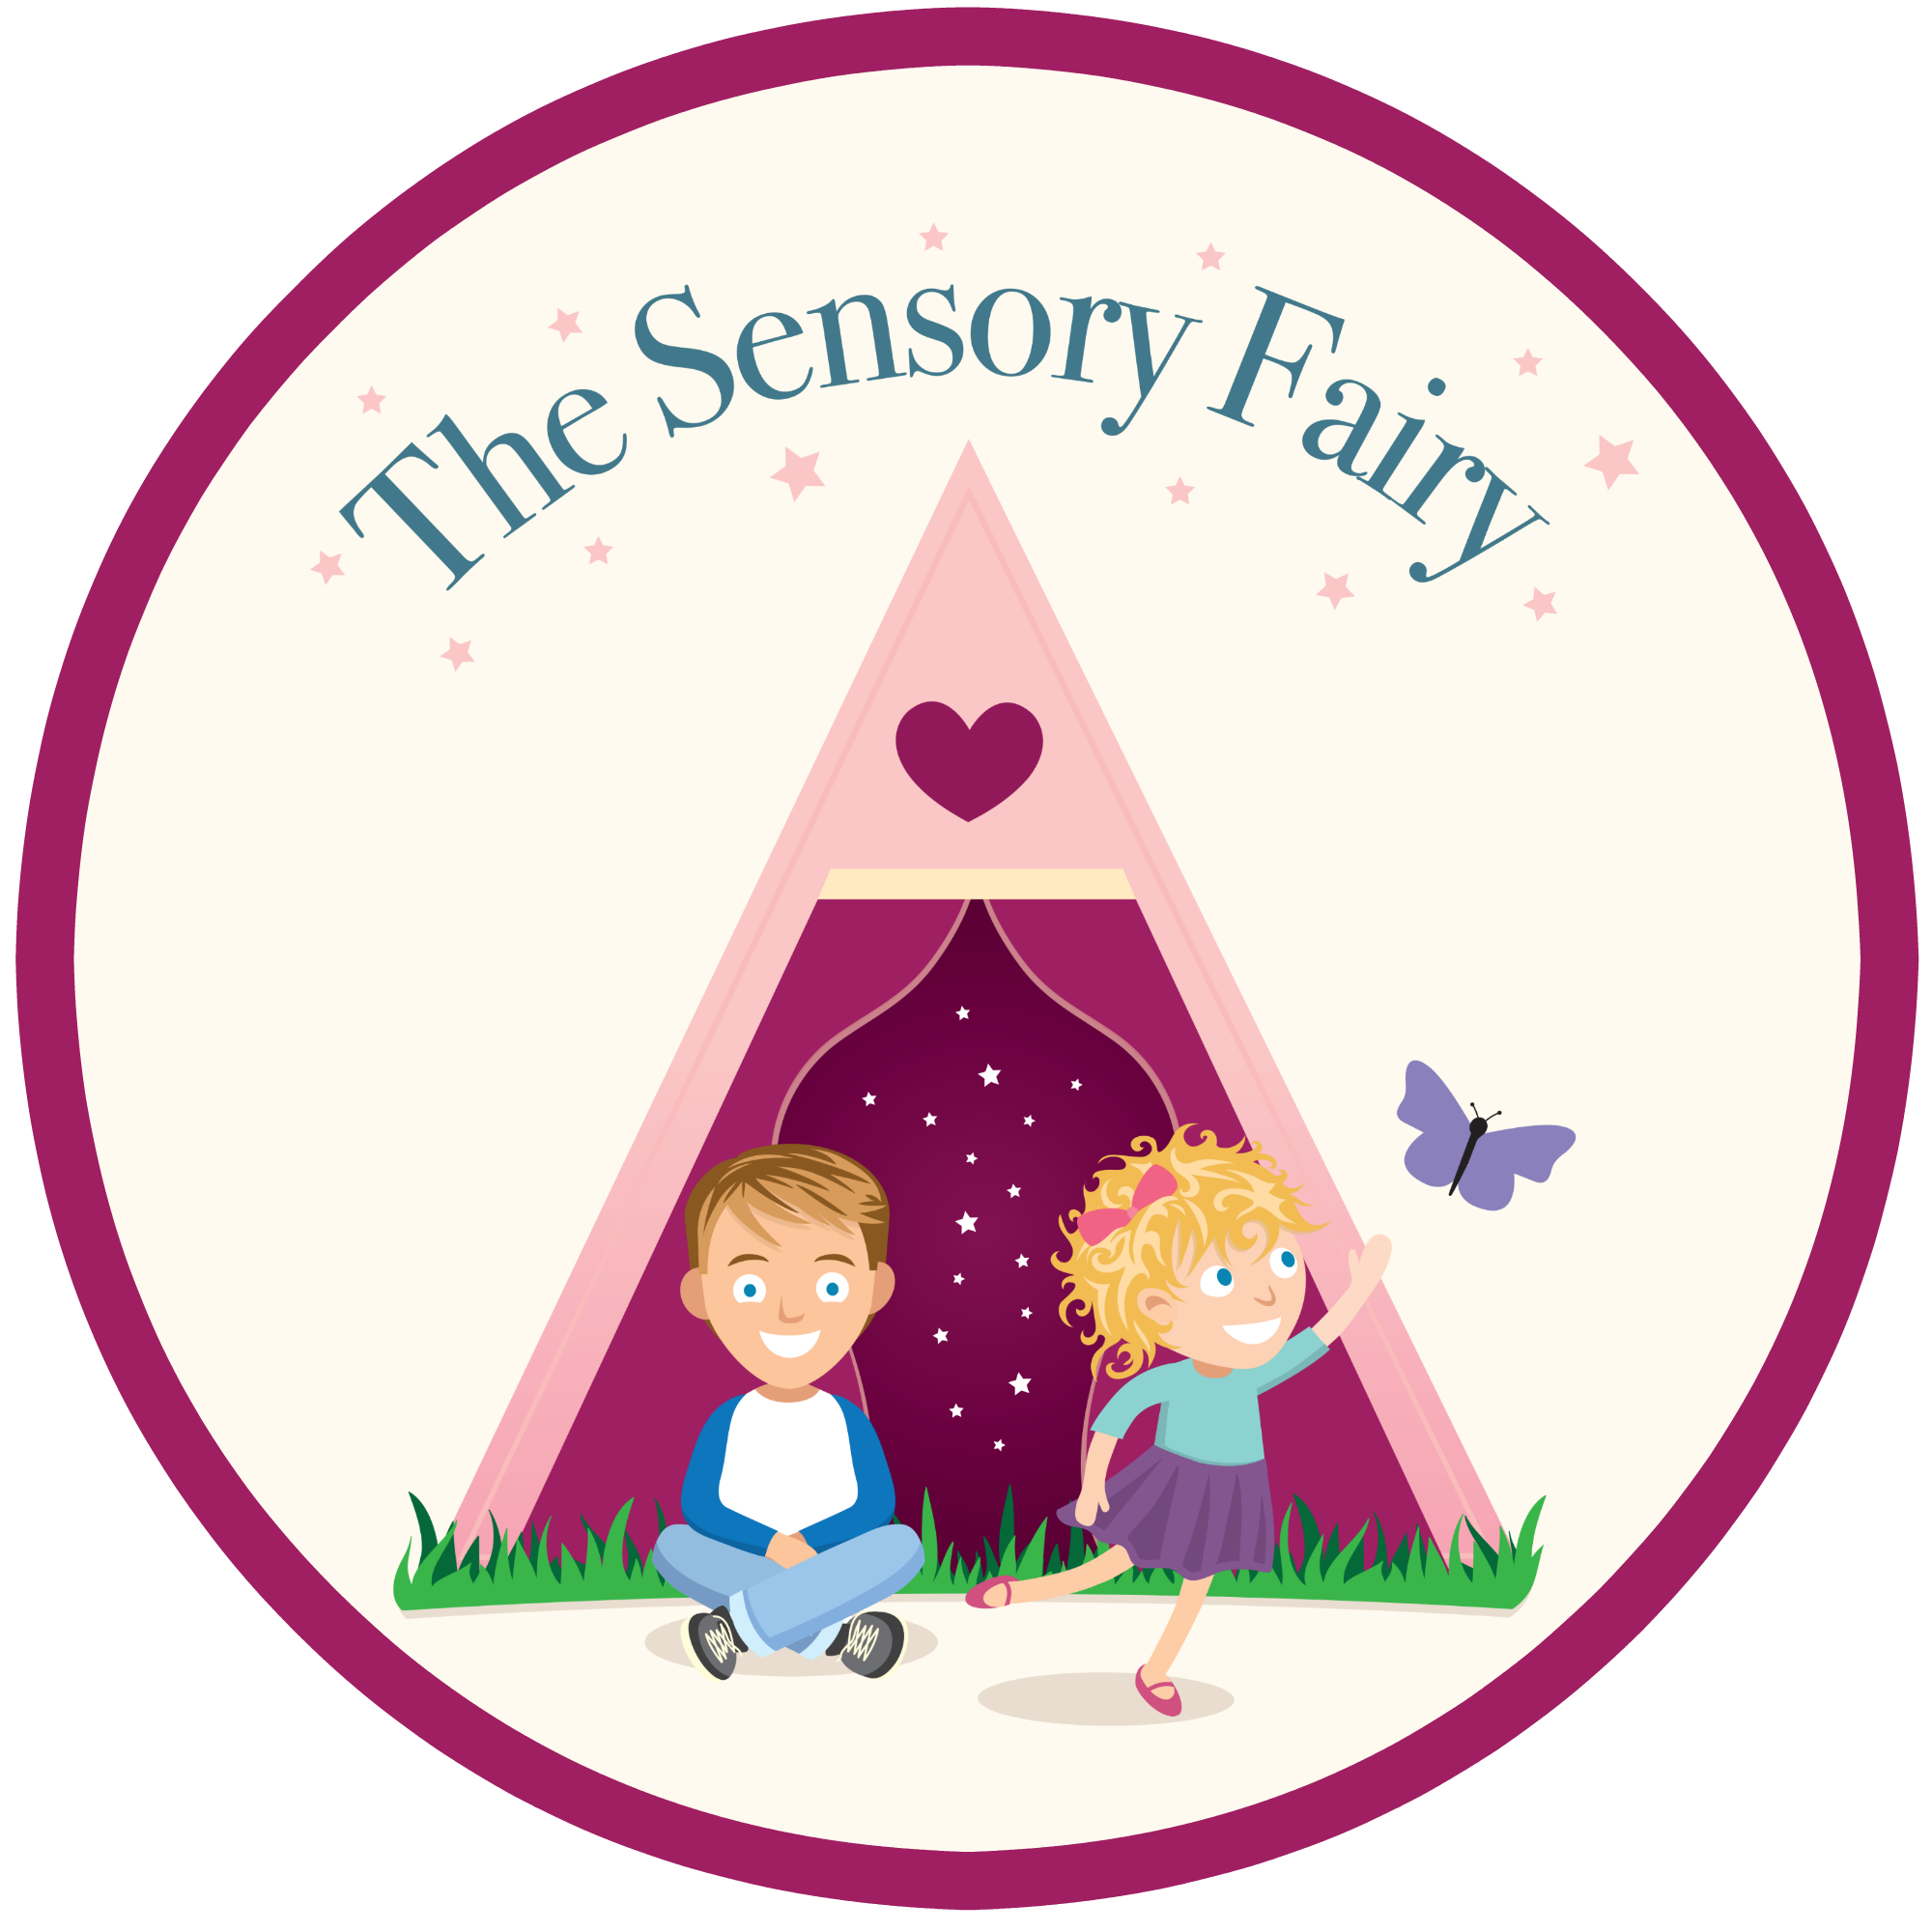 Note clipart positive note. The sensory fairy on